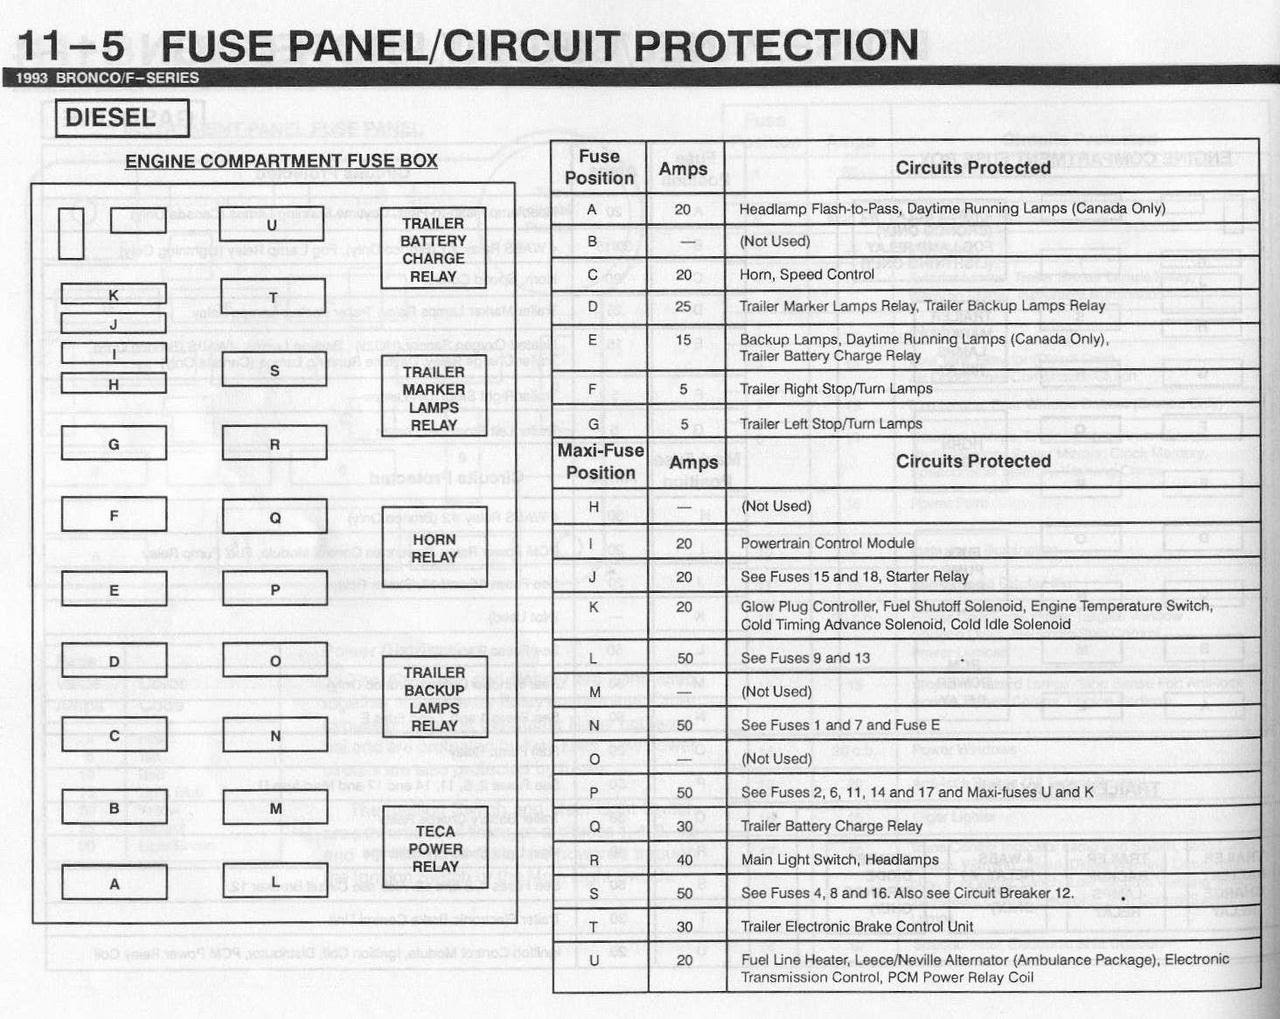 2008 Ford F250 Fuse Box Diagram - www.proteckmachinery.com